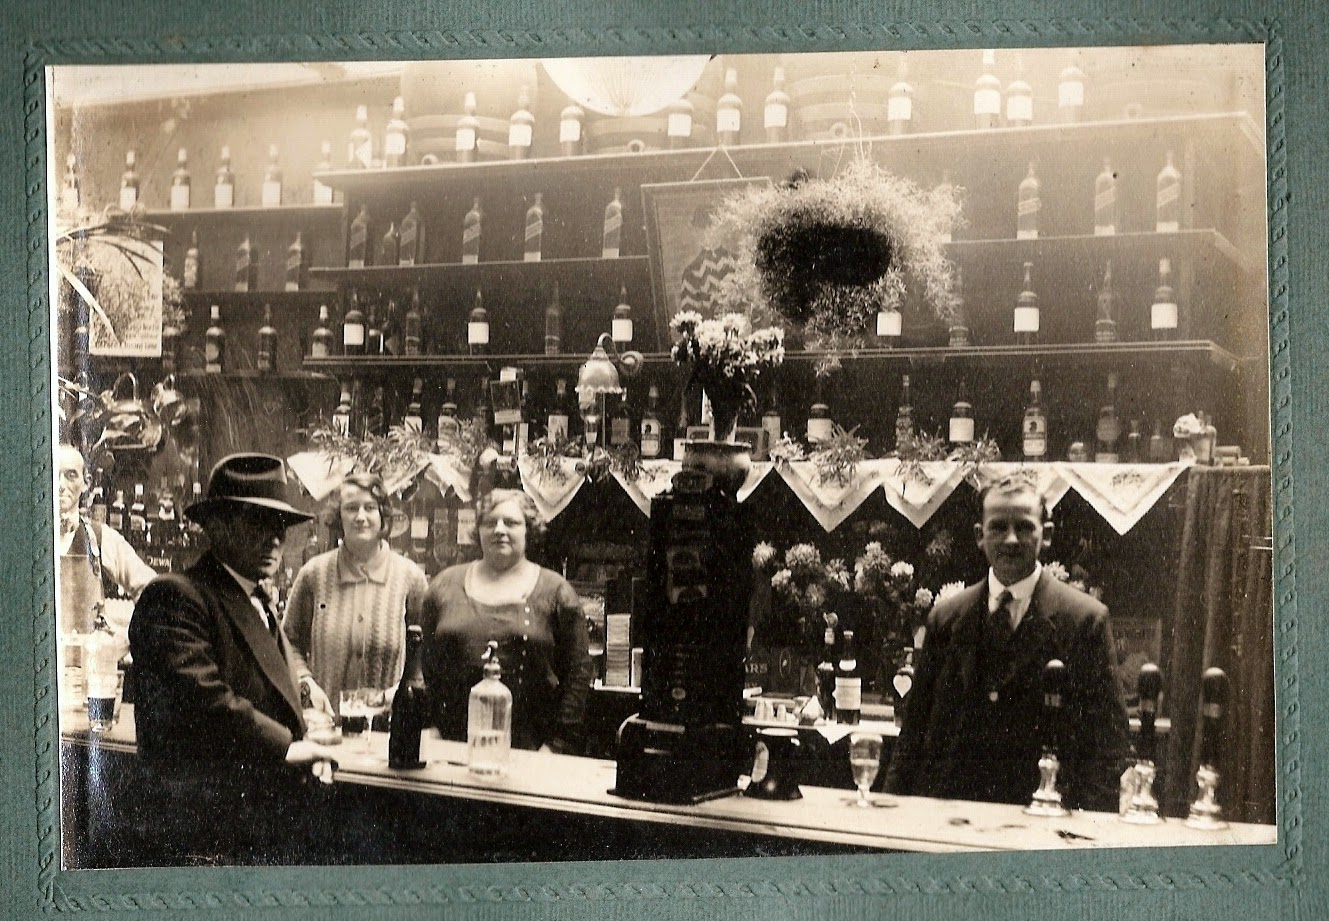 Photo inside the Old No. 9 pub